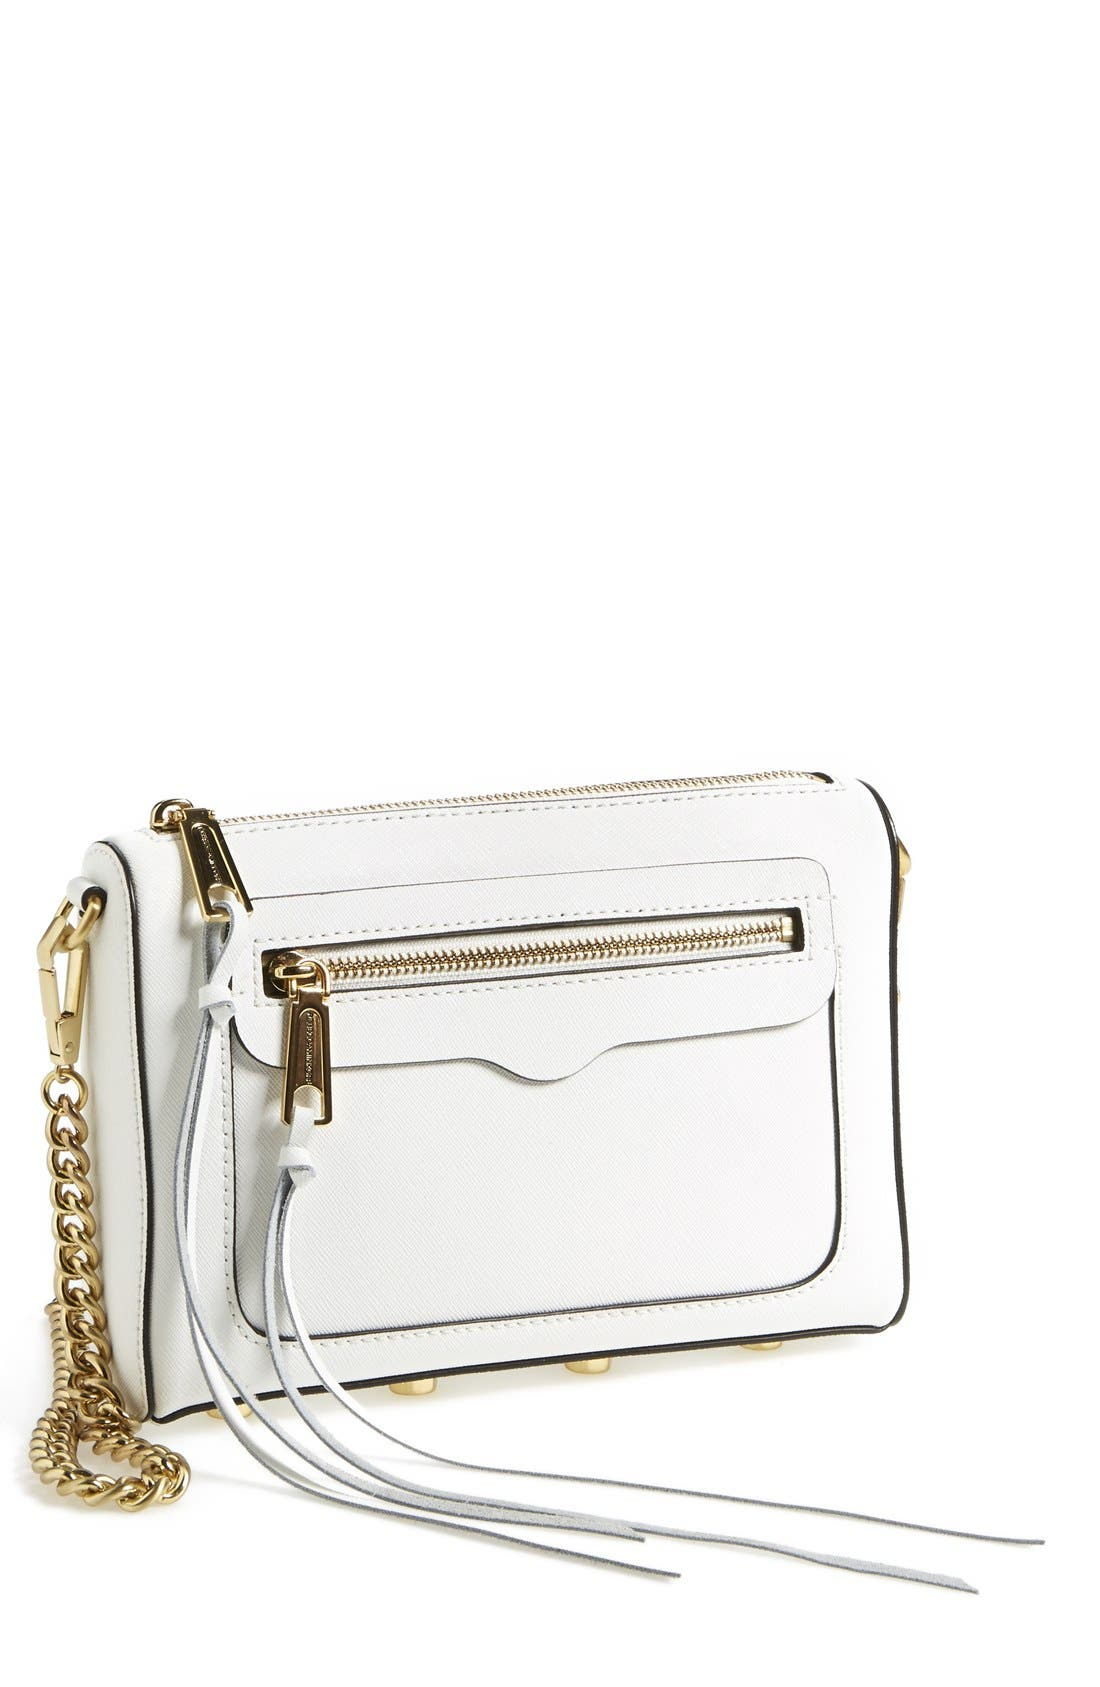 Main Image - Rebecca Minkoff 'Avery' Crossbody Bag